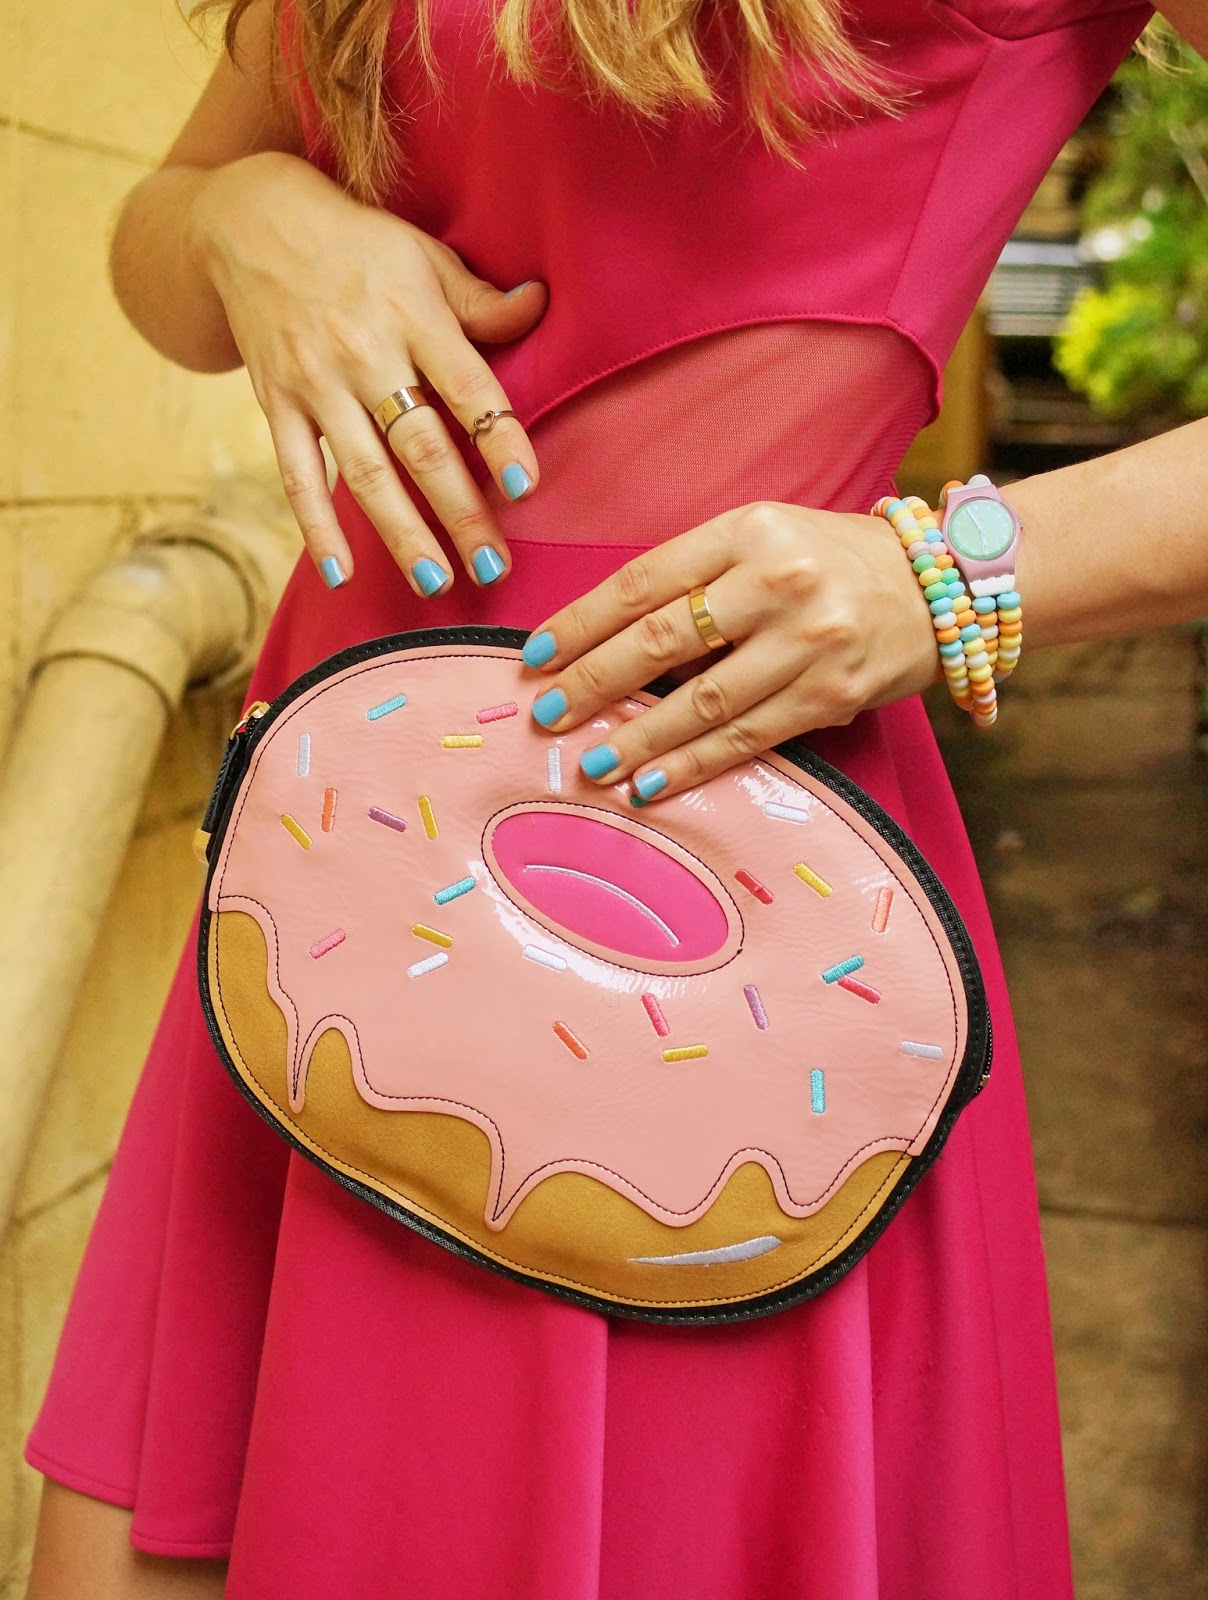 The perfect Clutch to celebrate Donut Day! Adorbs!